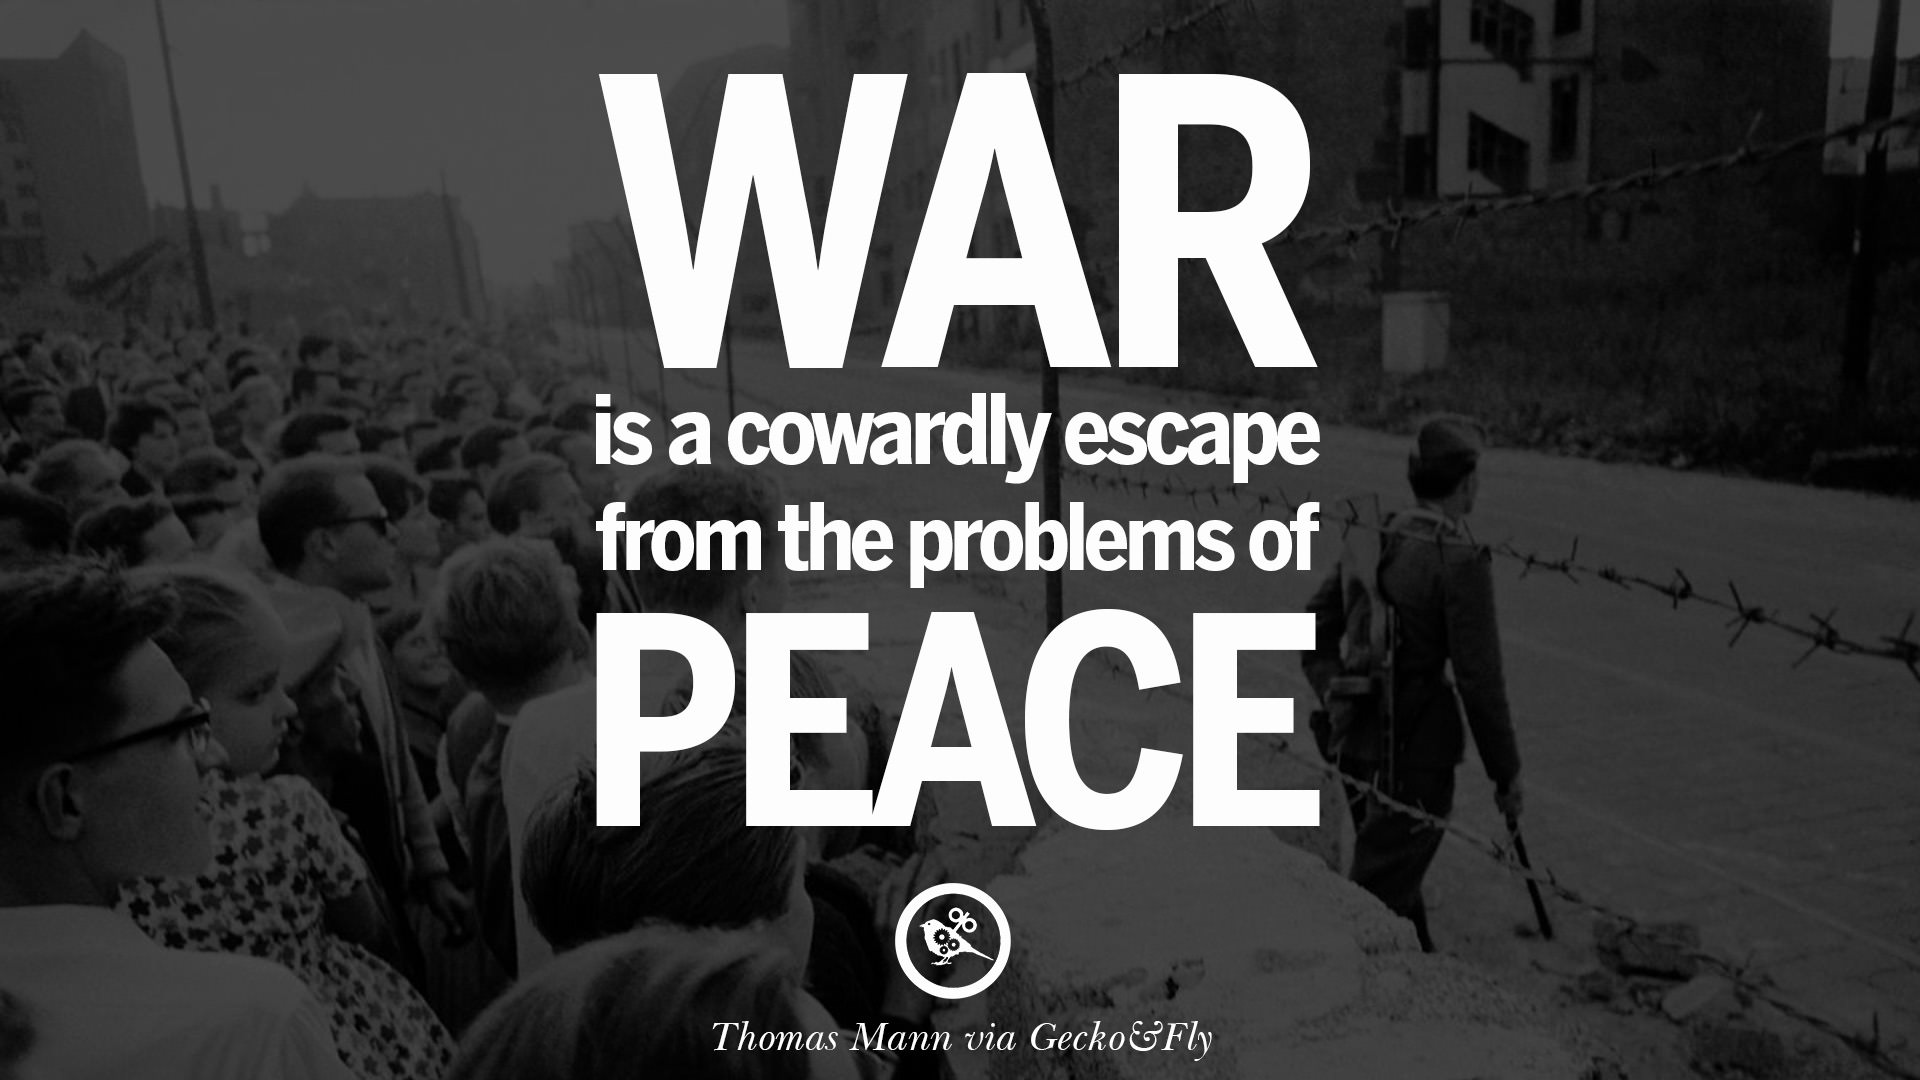 World Peace Quotes Adorable 10 Famous Quotes About War On World Peace Death Violence .